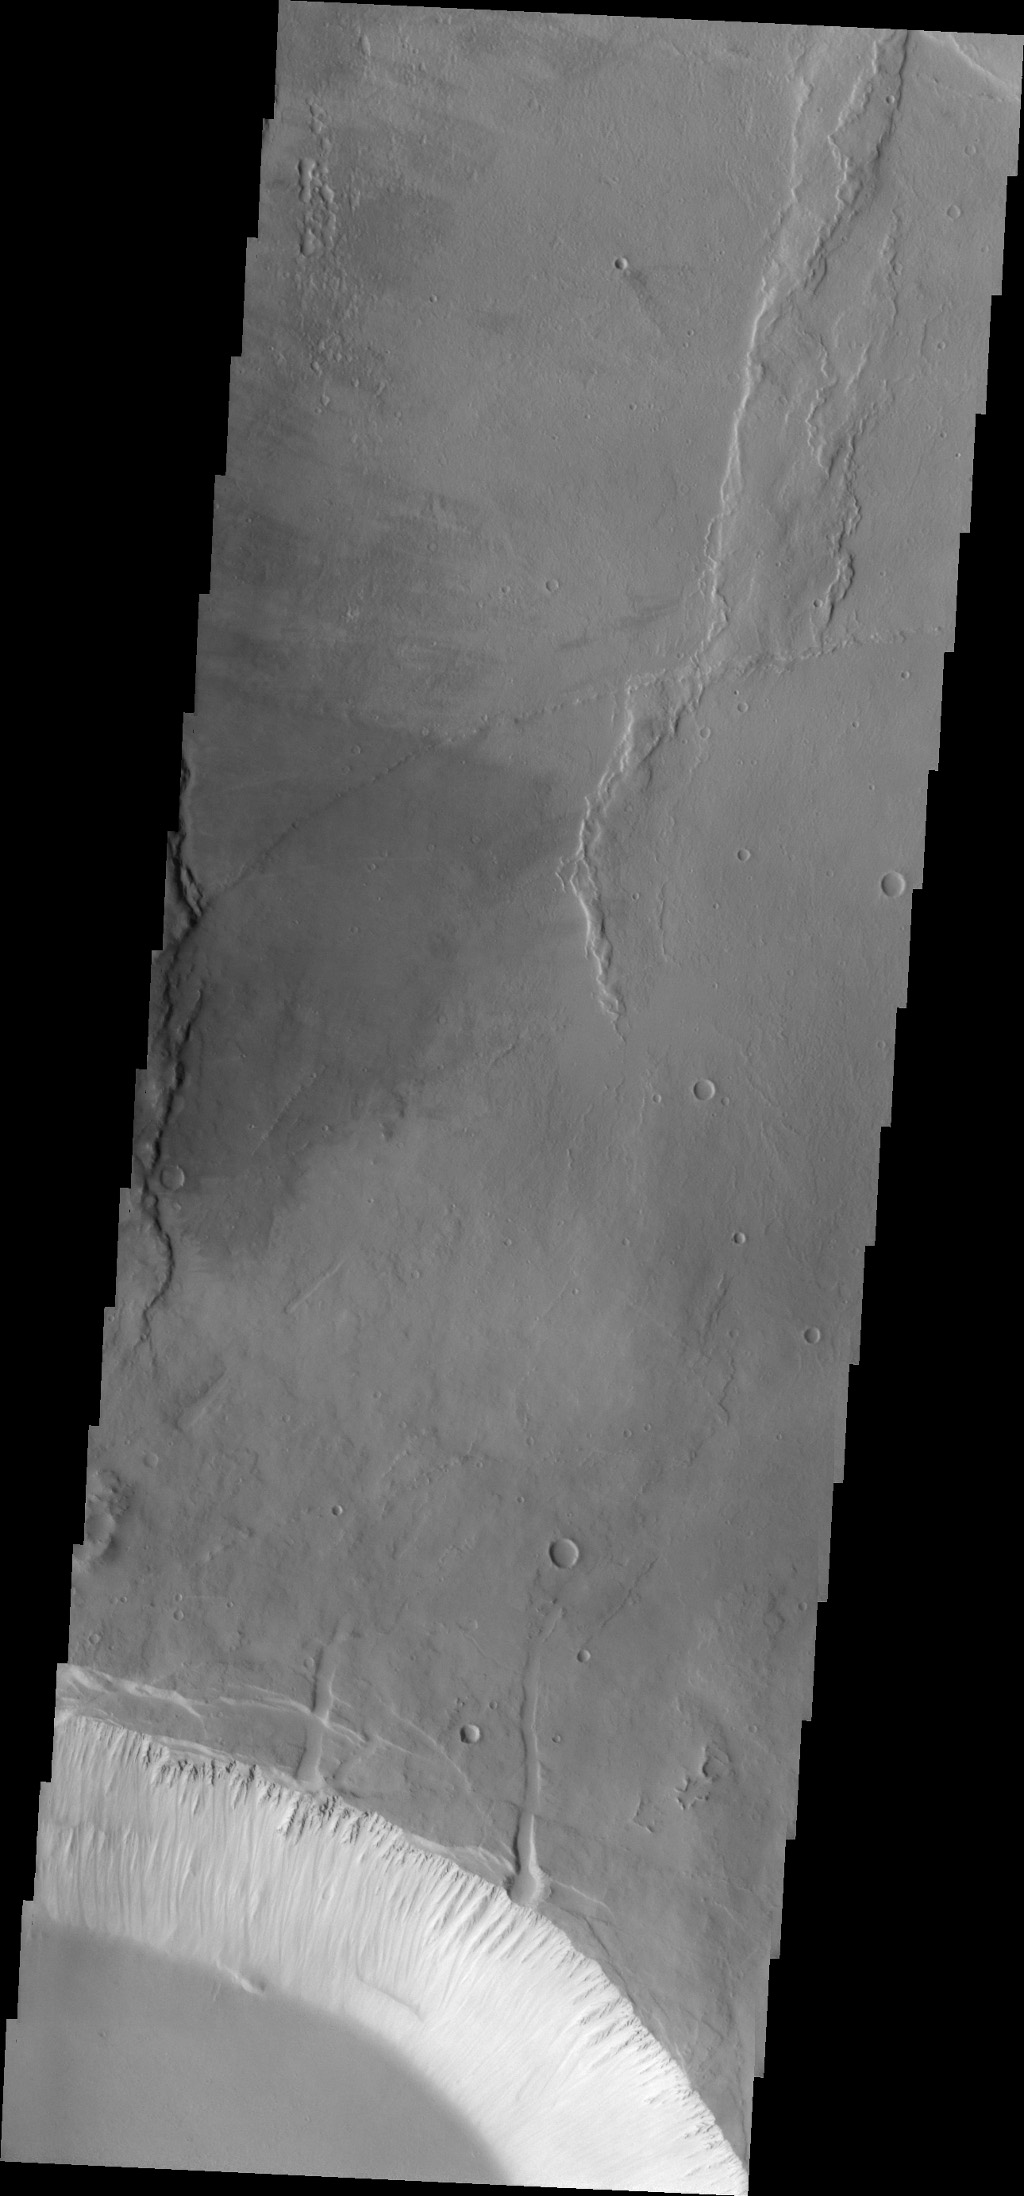 This image from NASA's 2001 Mars Odyssey spacecraft shows part of the two summit calderas of Pavonis Mons. The surface in the majority of the image is the floor of the larger caldera.